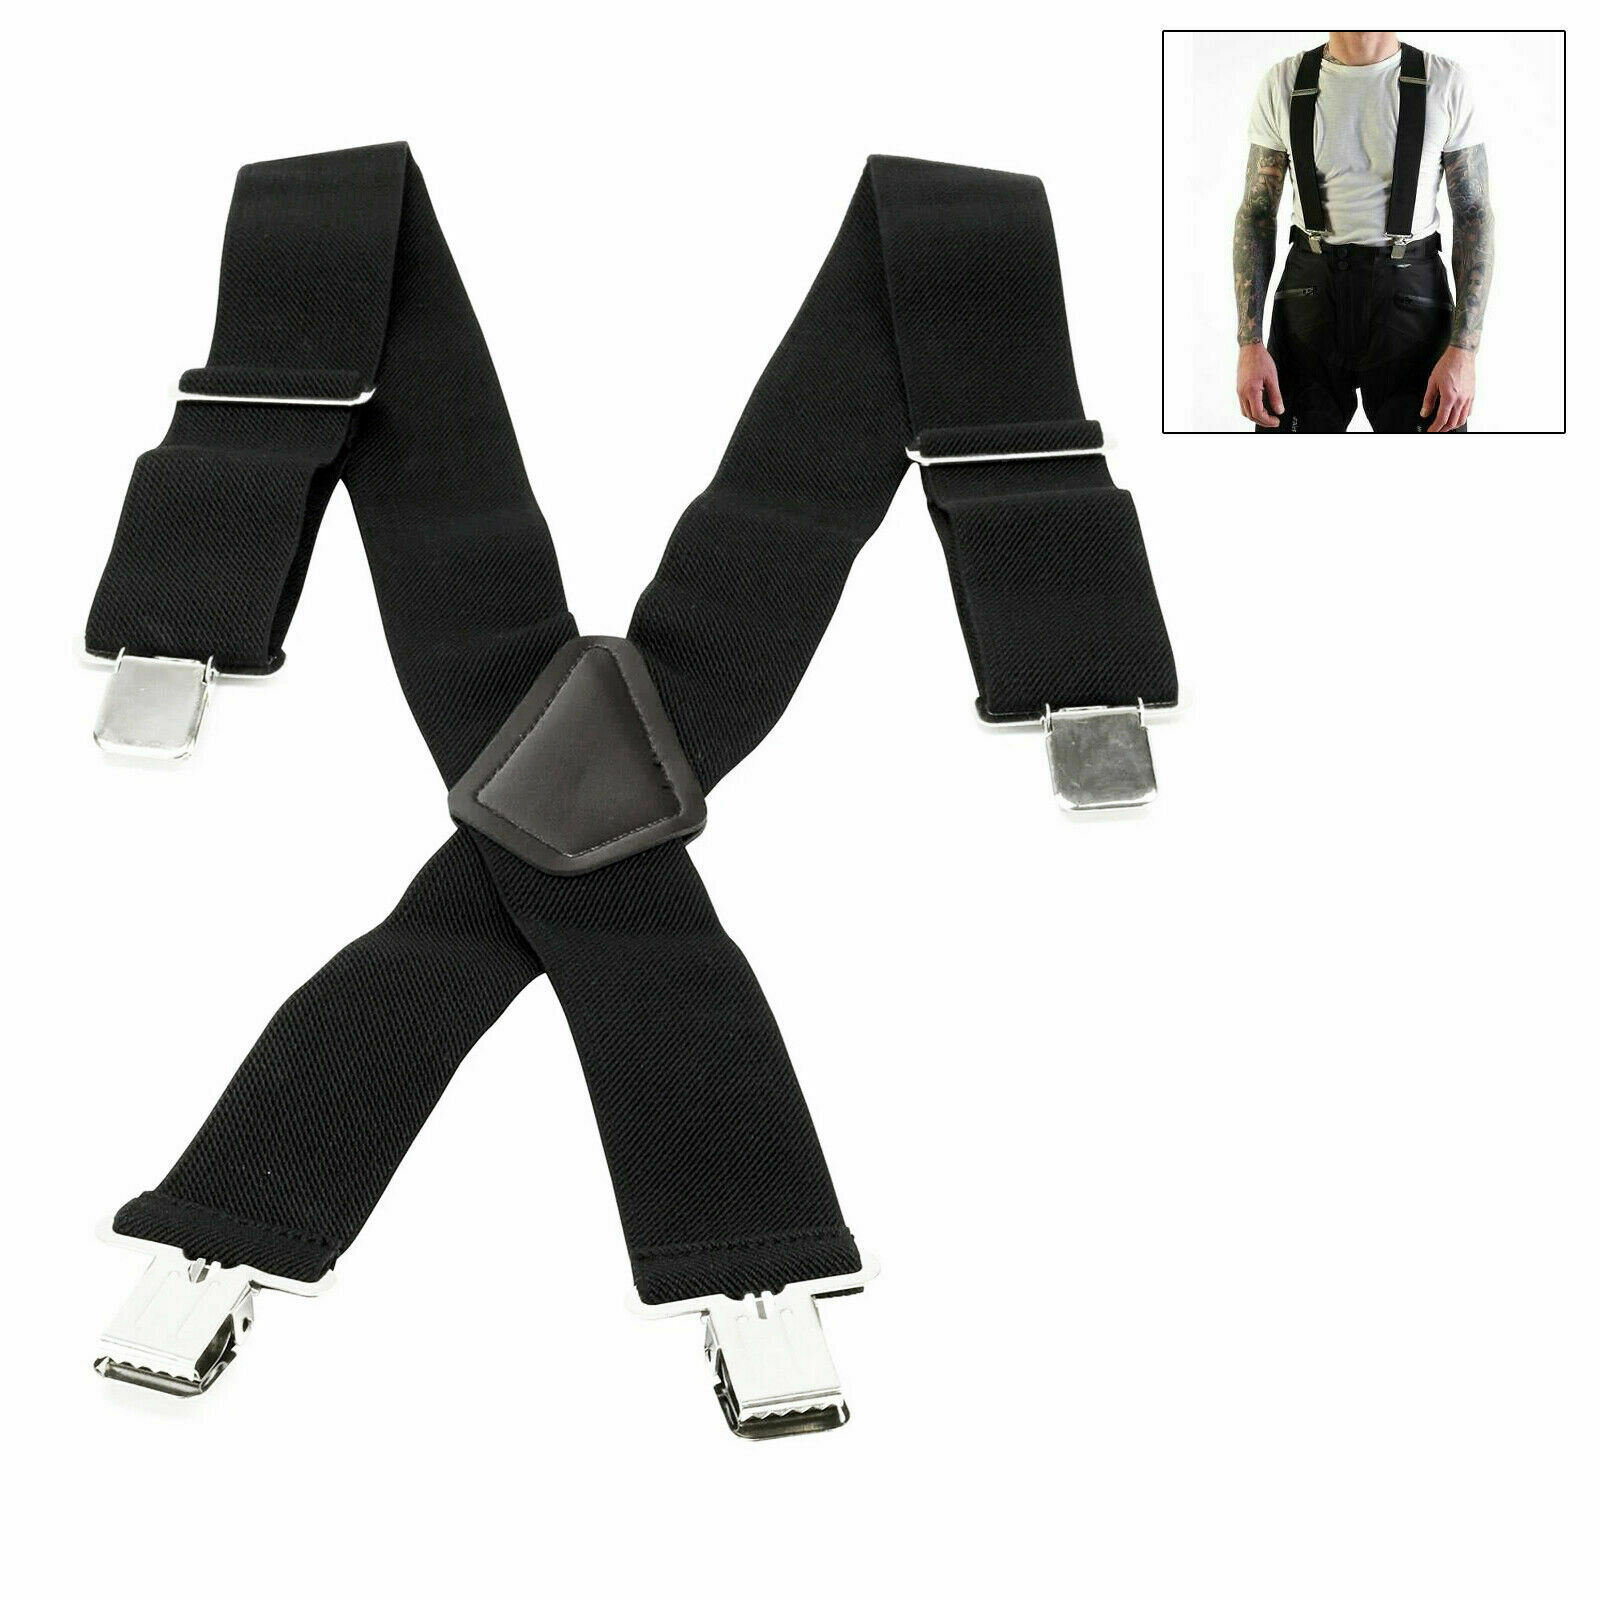 Motorcycle Motorbike Blike Rider Heavy Duty Elasticated Braces For Trousers Pant